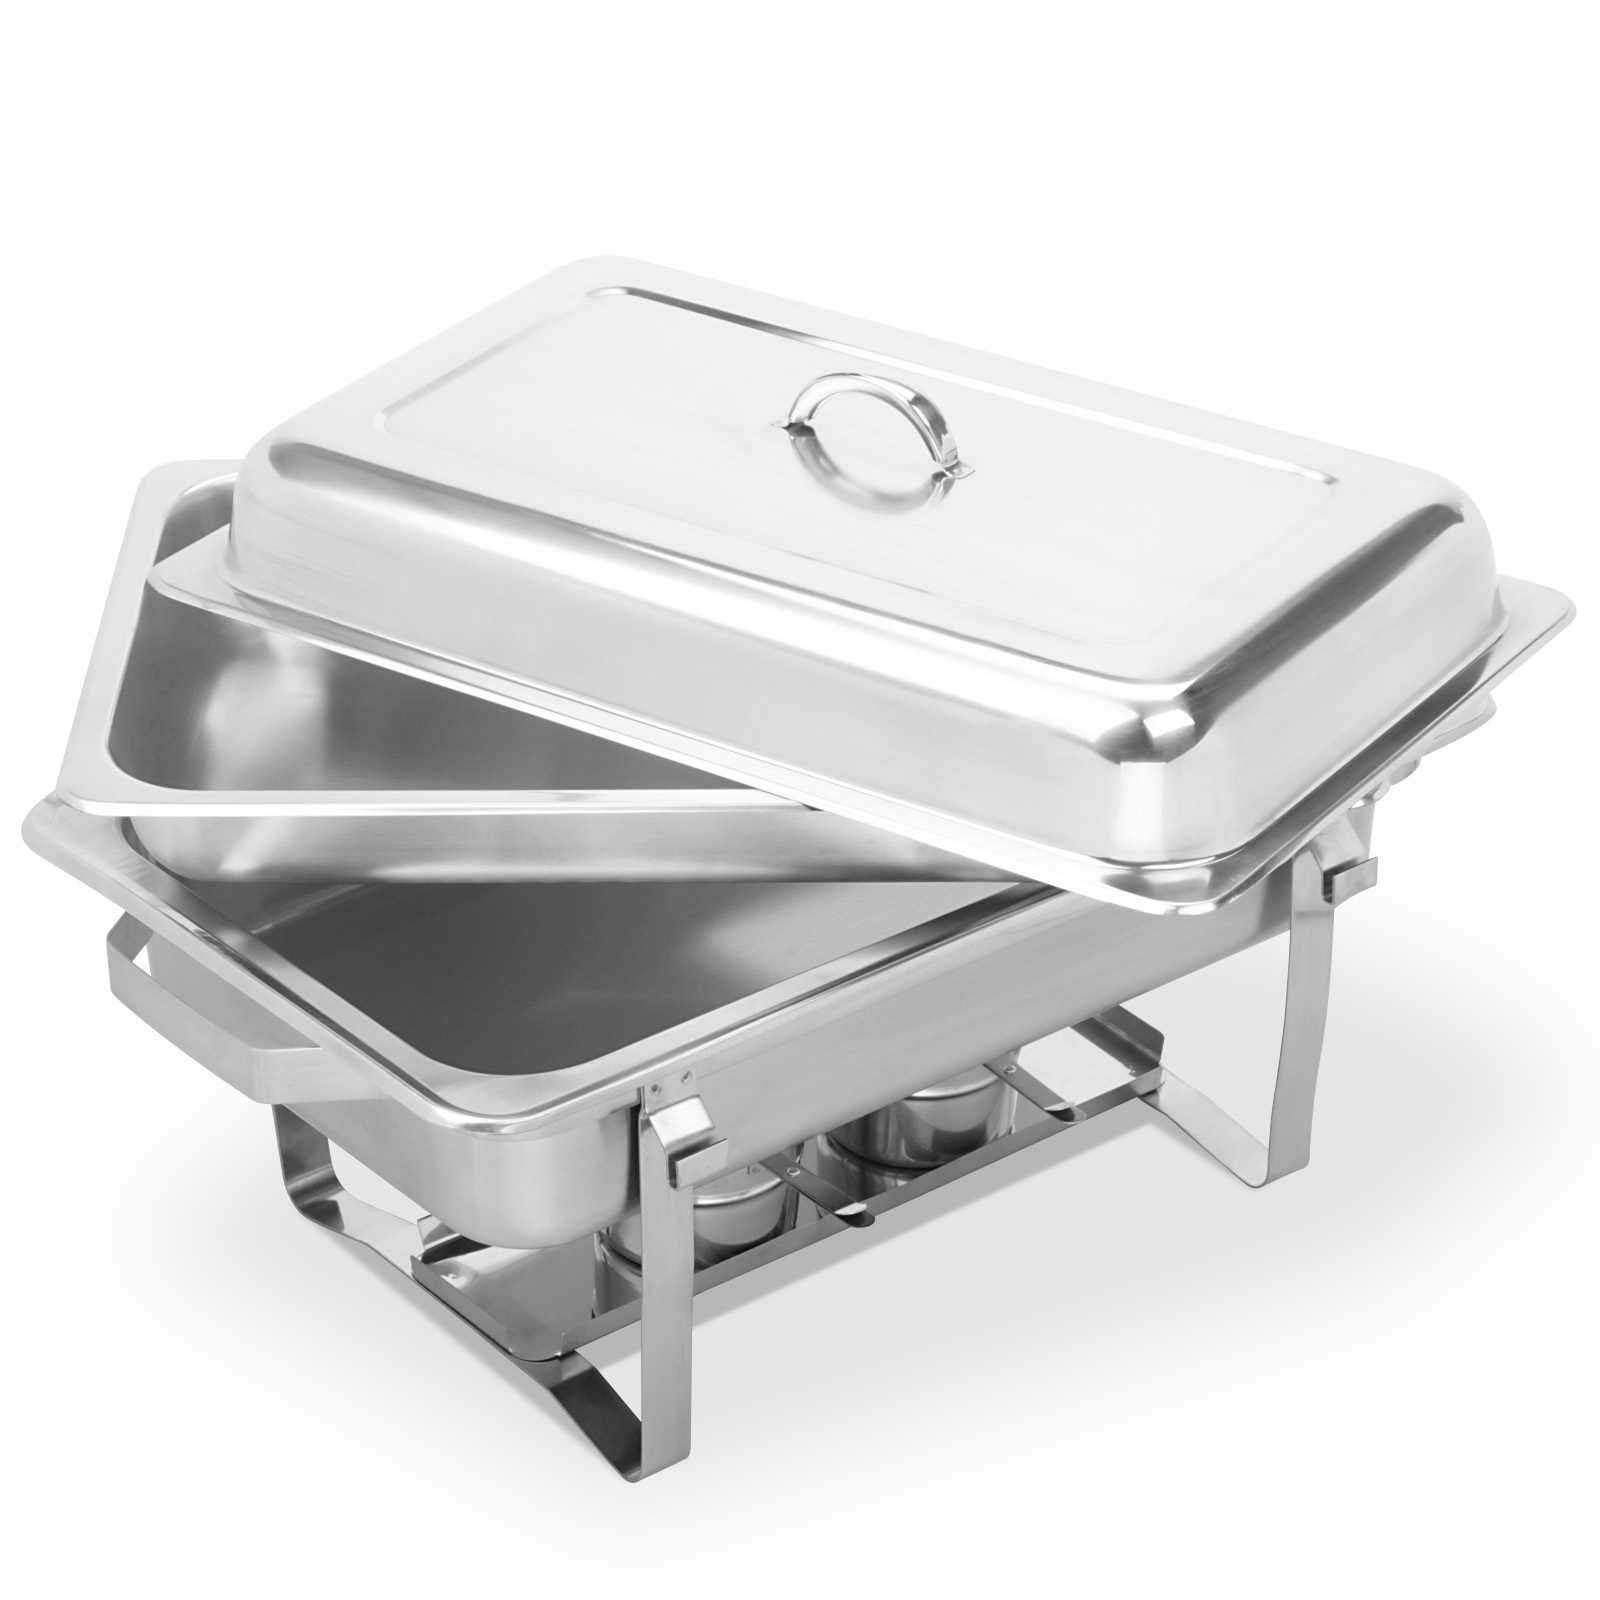 Chafing Dish Set 4 Packs of 9L Chafer Dish Buffet Catering ...